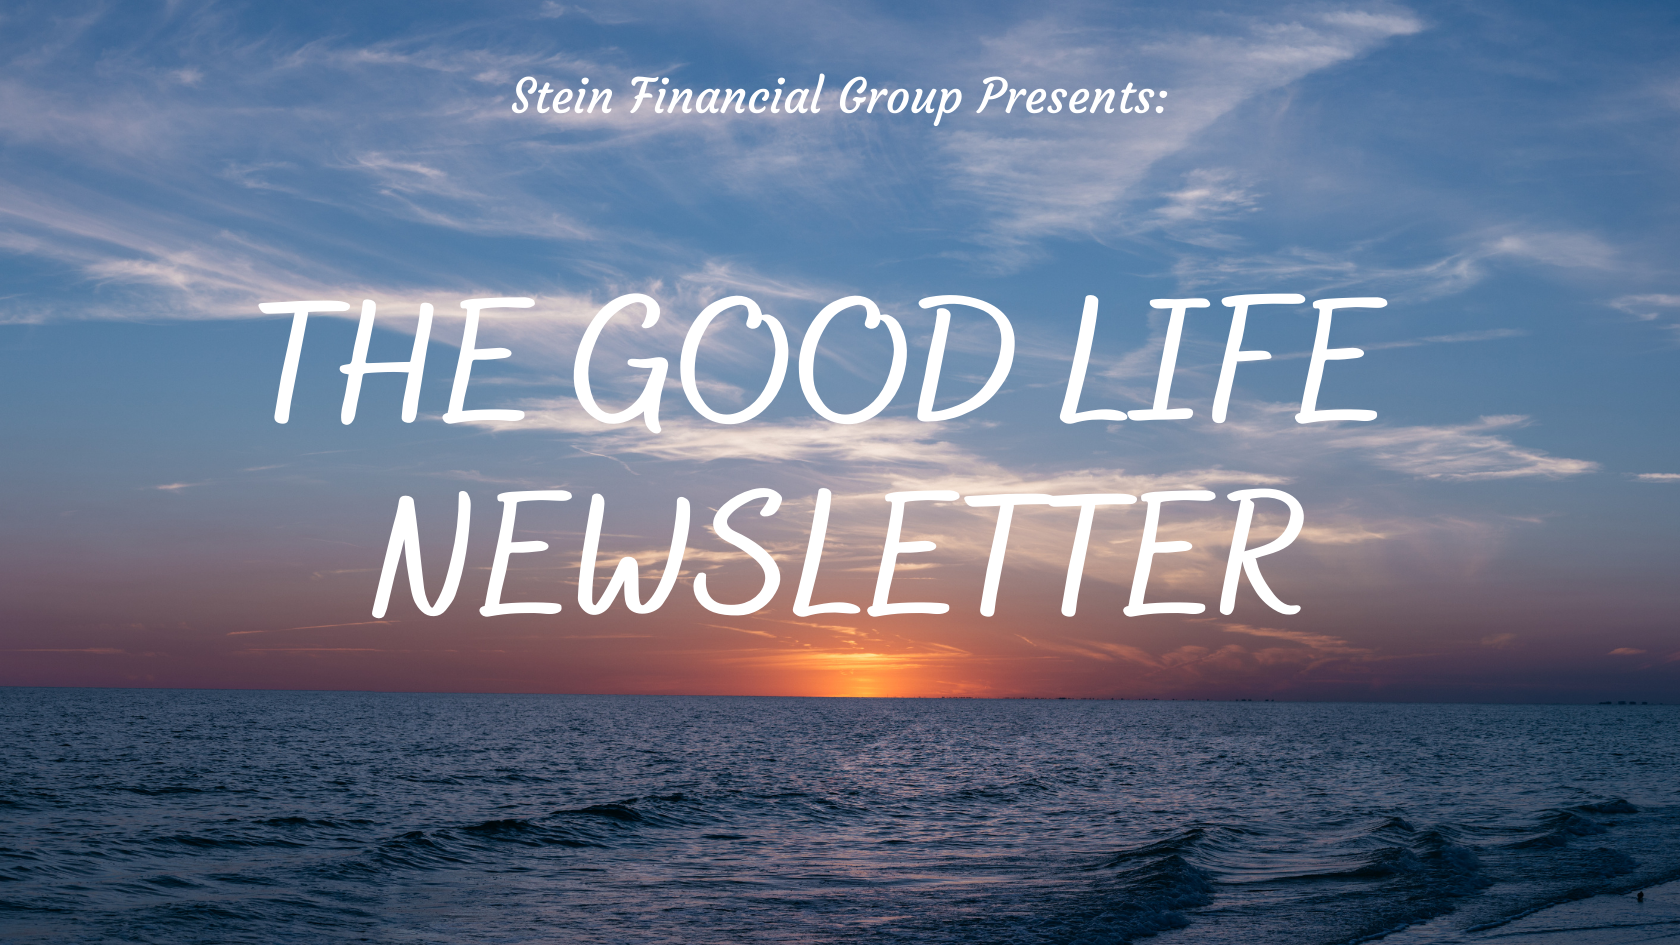 The Good Life Newsletter -  Last Week Stocks Mixed Amid Uncertainty & An Update On Fiscal Stimulus Thumbnail